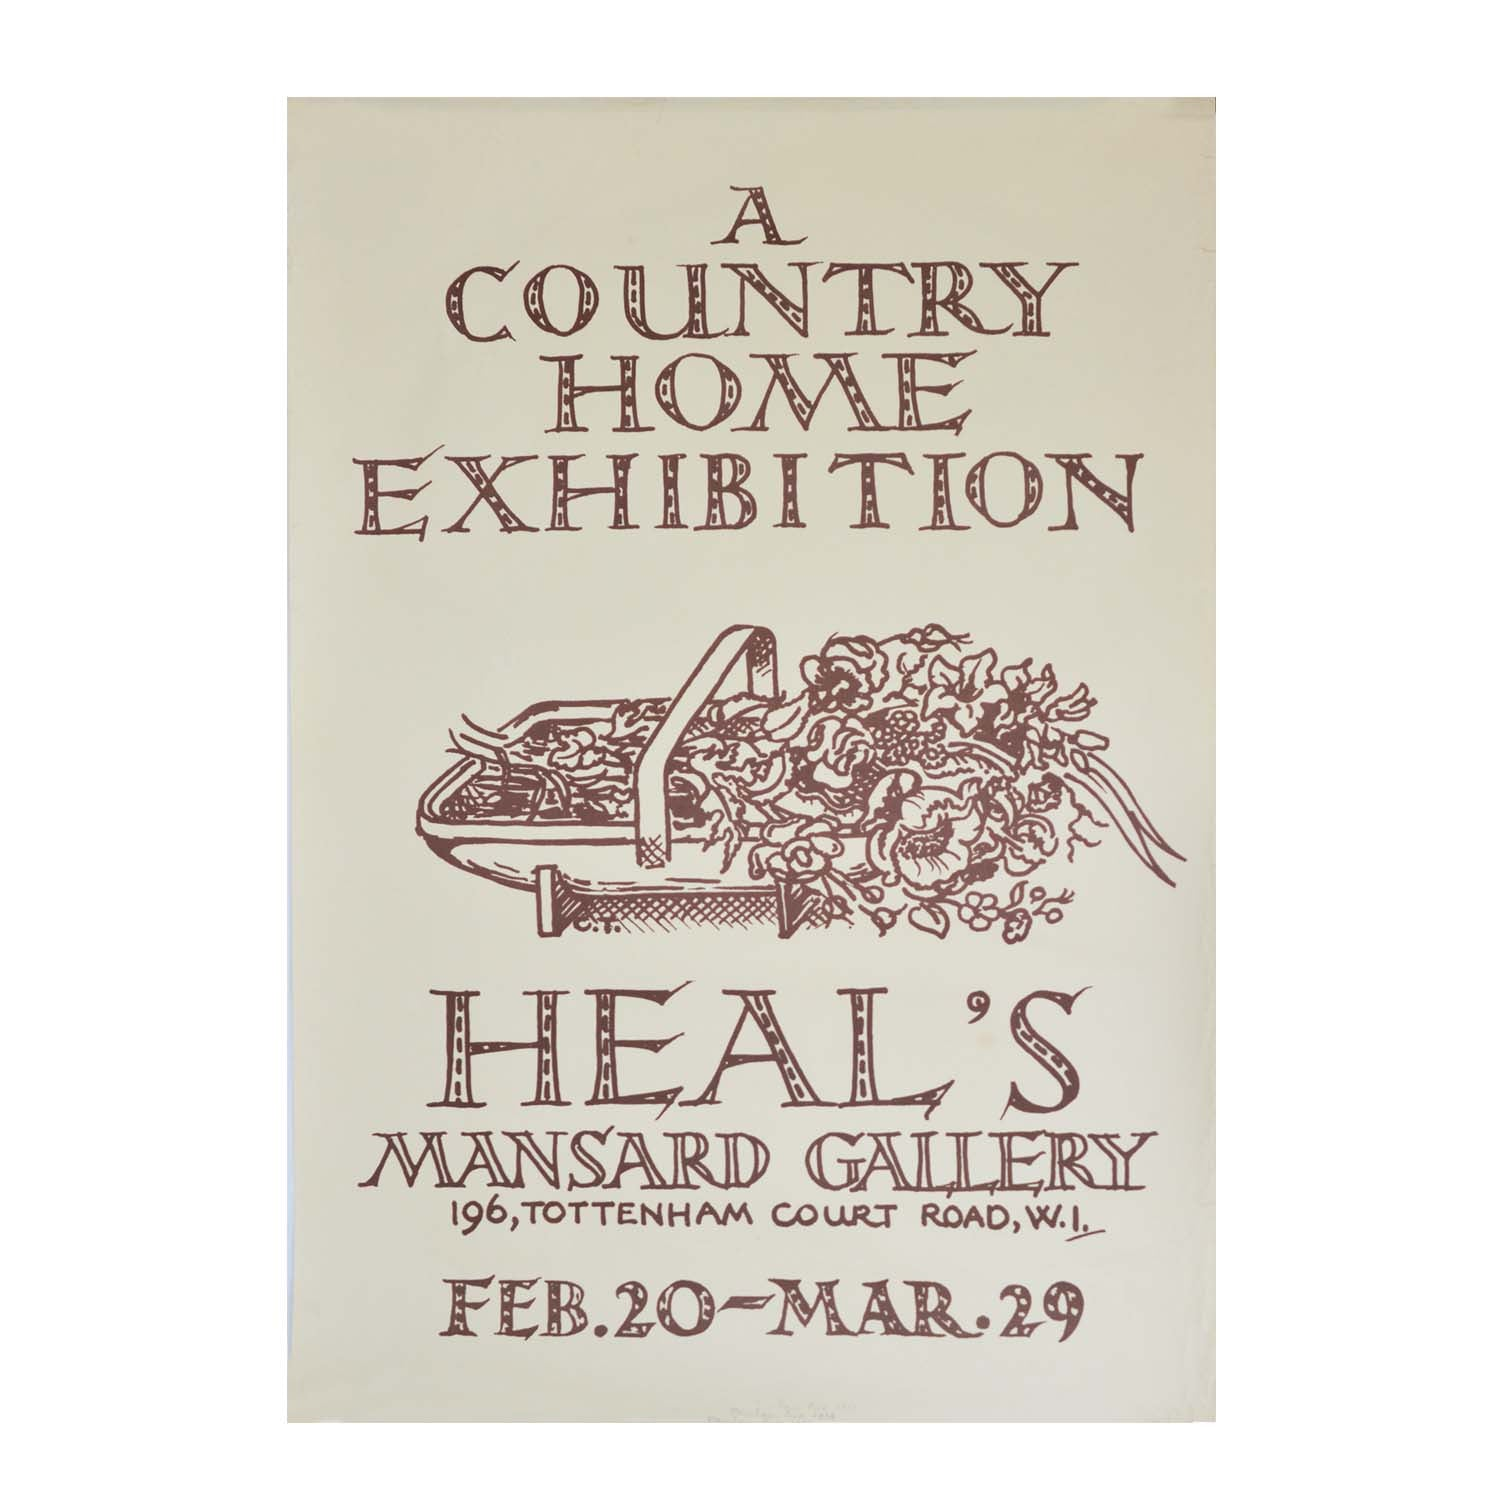 Original Mansard Gallery poster. 1930s. 'Country Home' interior design